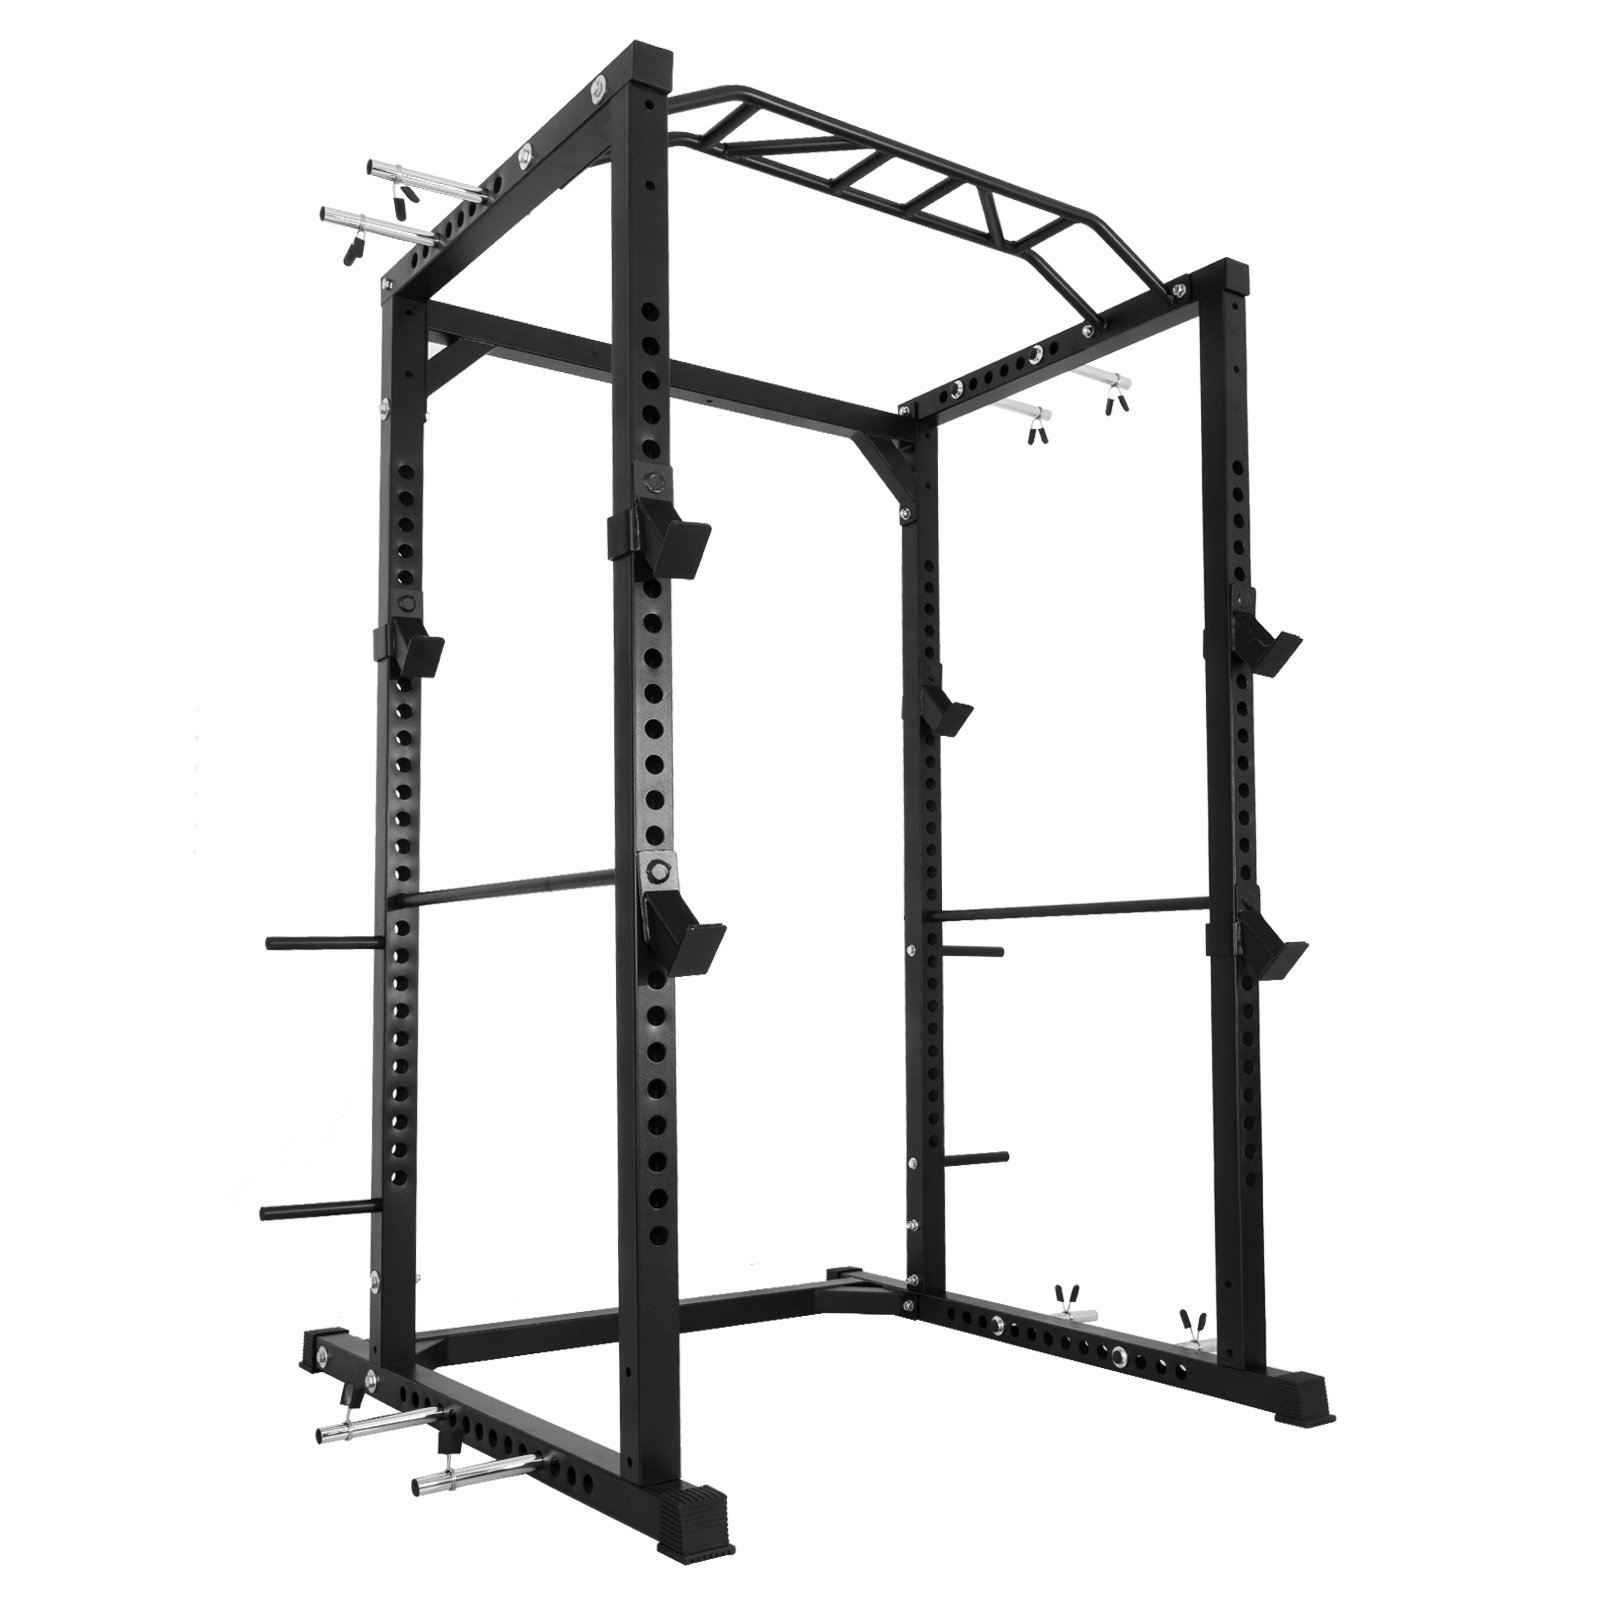 OrangeA BD-41 Heavy Duty Power Cage with Band Pegs and Multi-Grip Chin-Up Multi-Functional Power Rack with Adjustable Bar (BD-41)